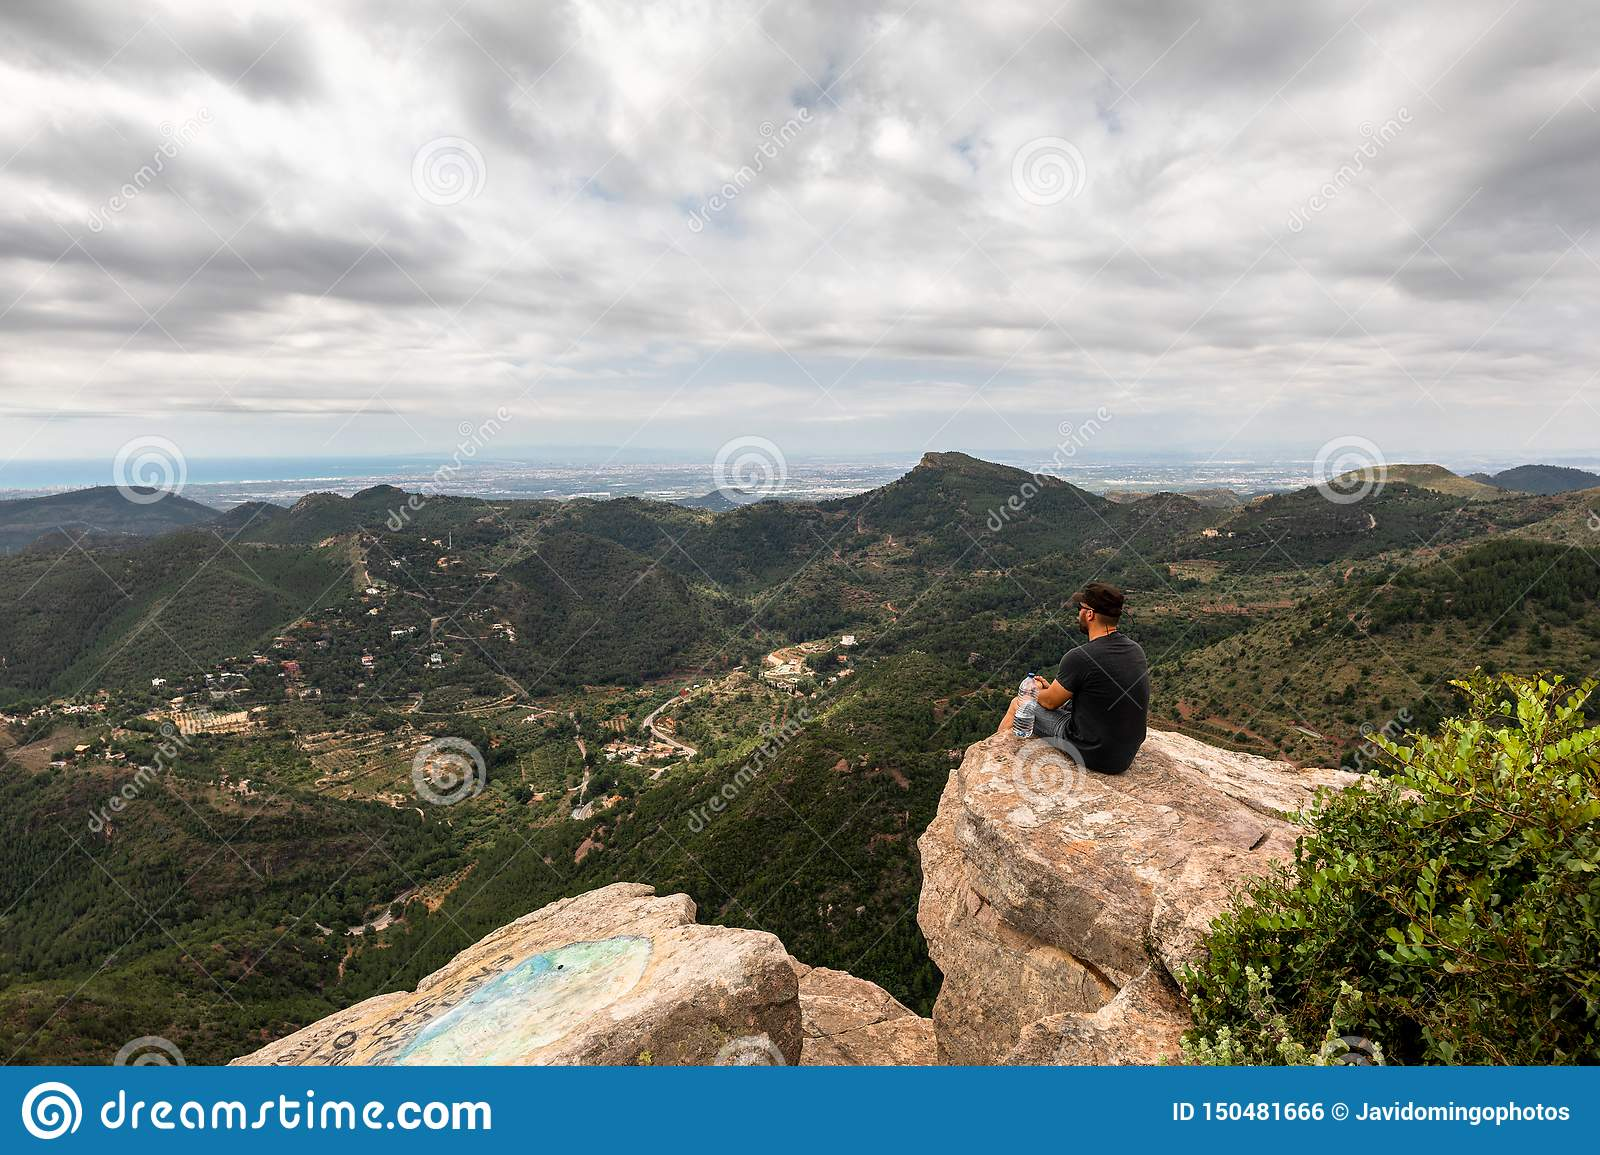 Panoramic View Of Tourist On Mountain Peak